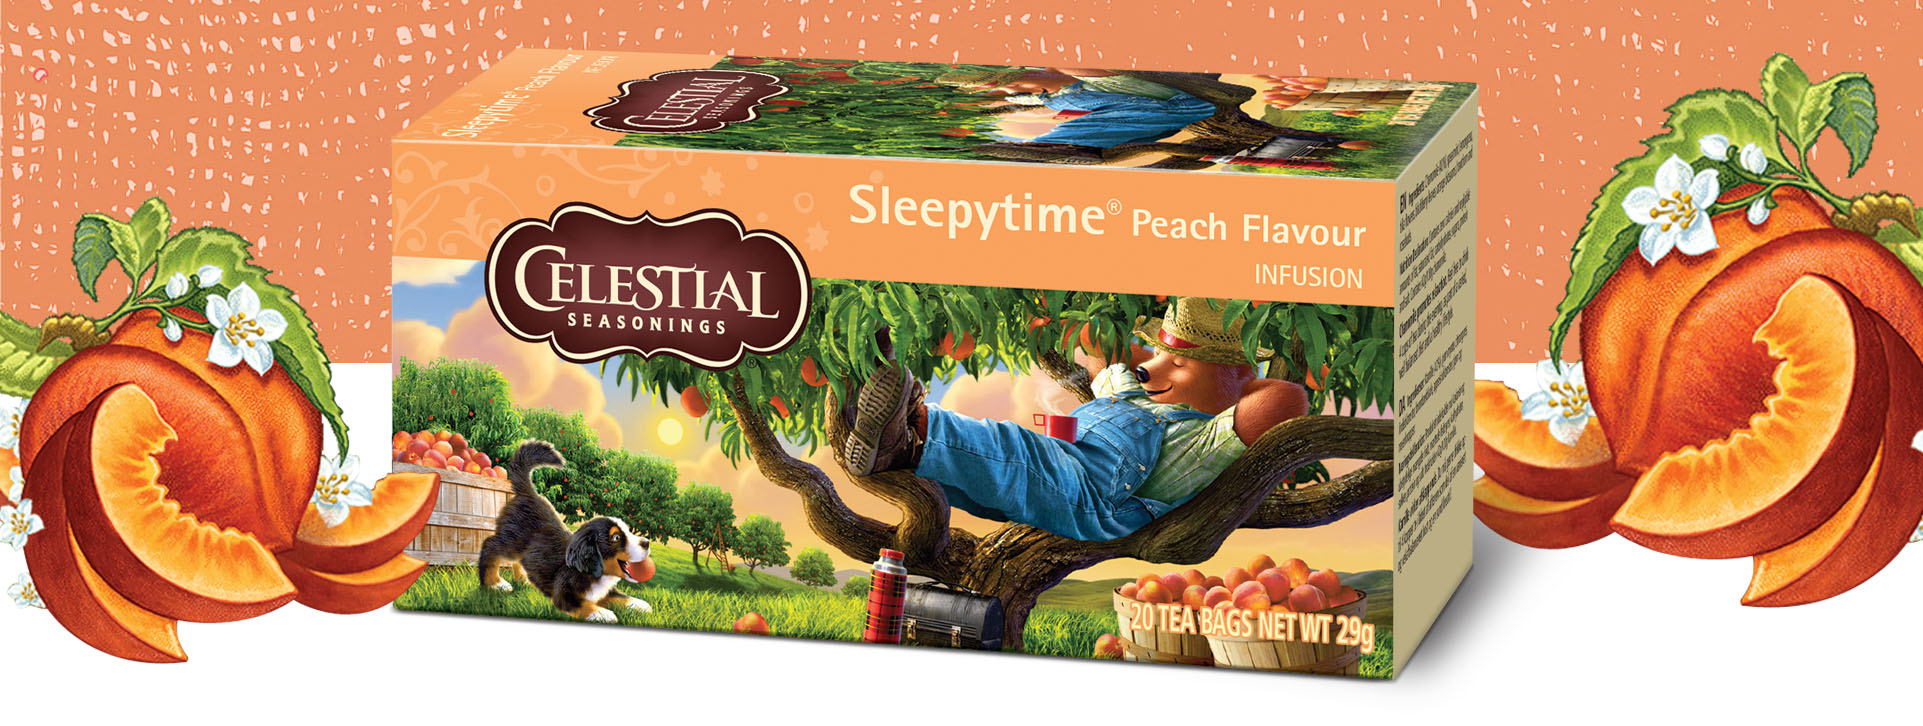 Celestial Seasonings Sleepytime Peach Tea